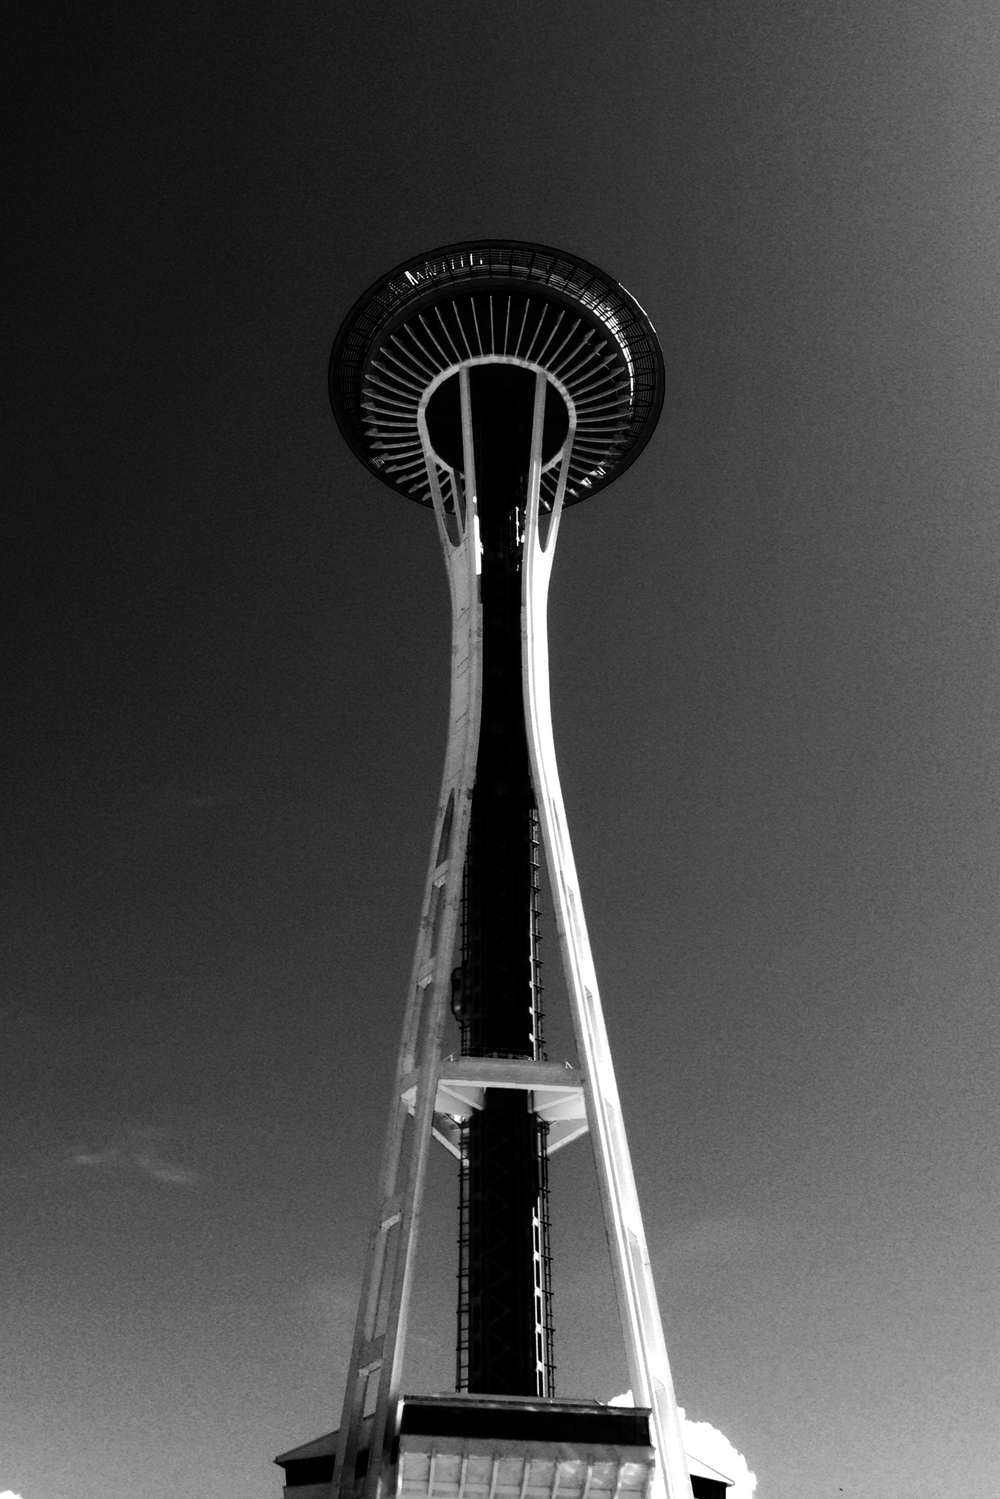 My Grandma and Grandpa took me up the Space Needle when I was really young. It was great to experience it again!